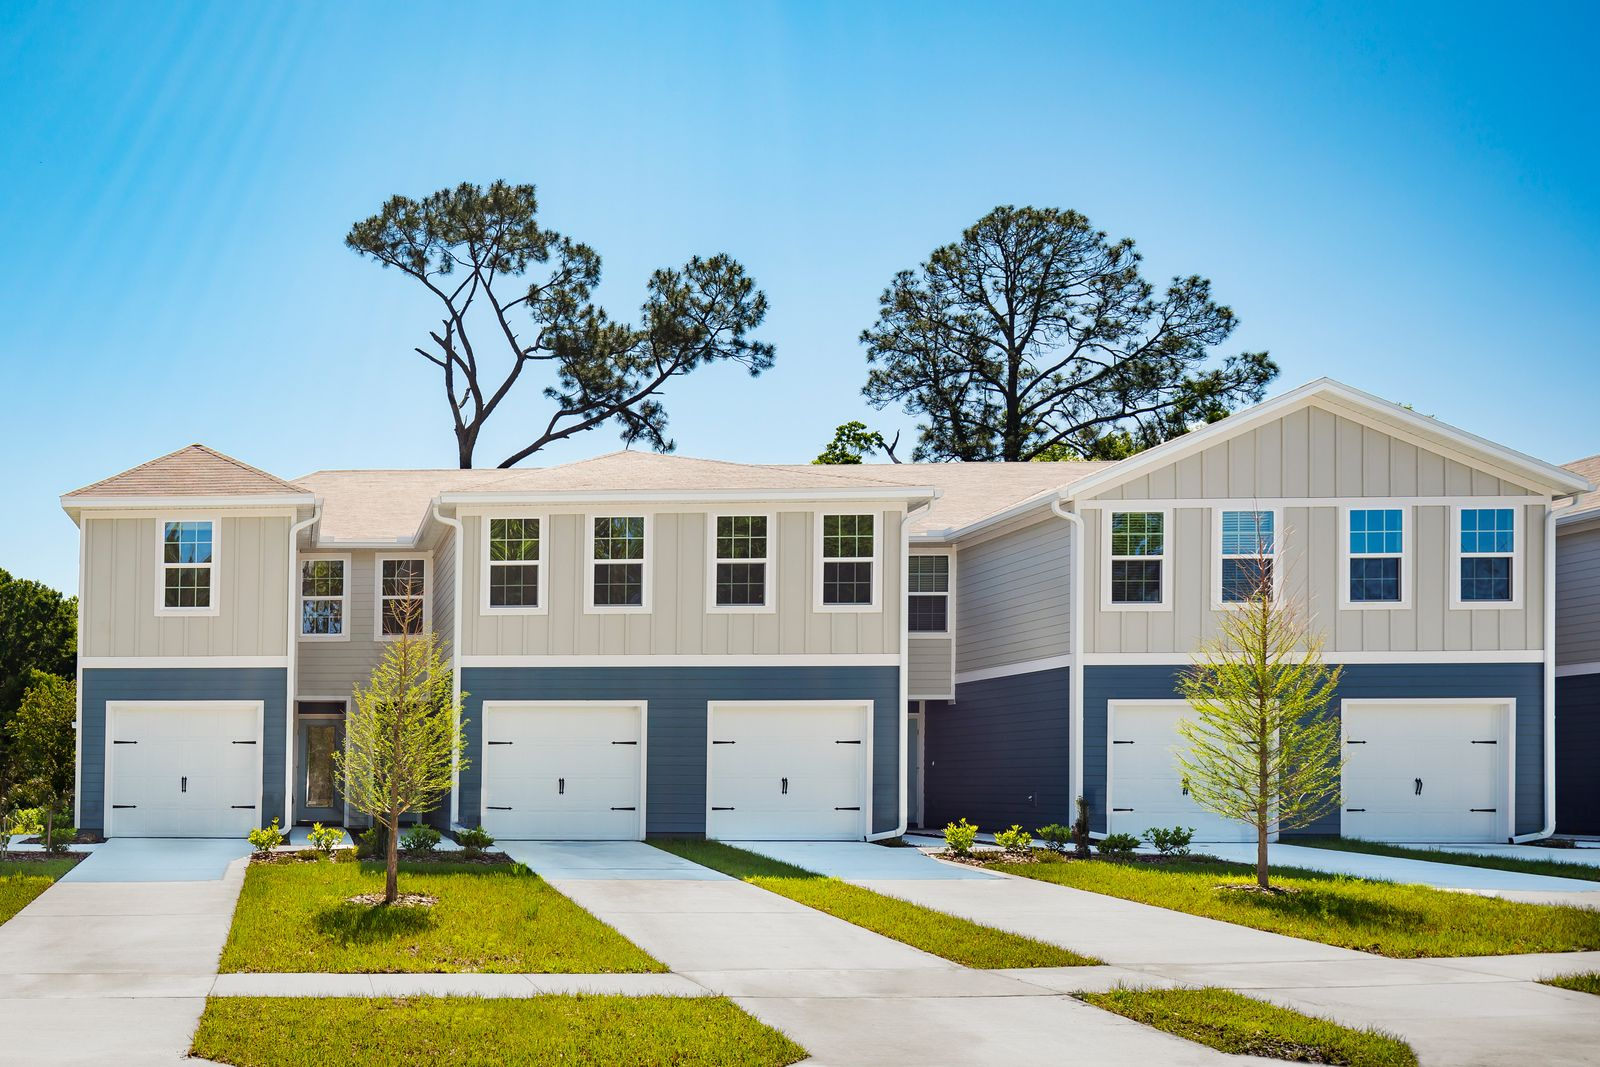 Welcome Home to Creekbend in Jacksonville, FL!:Own for less than rent in Jacksonville! New construction townhomes affordably priced from the low $200s with a low monthly payment. Schedule an appointment to learn more.